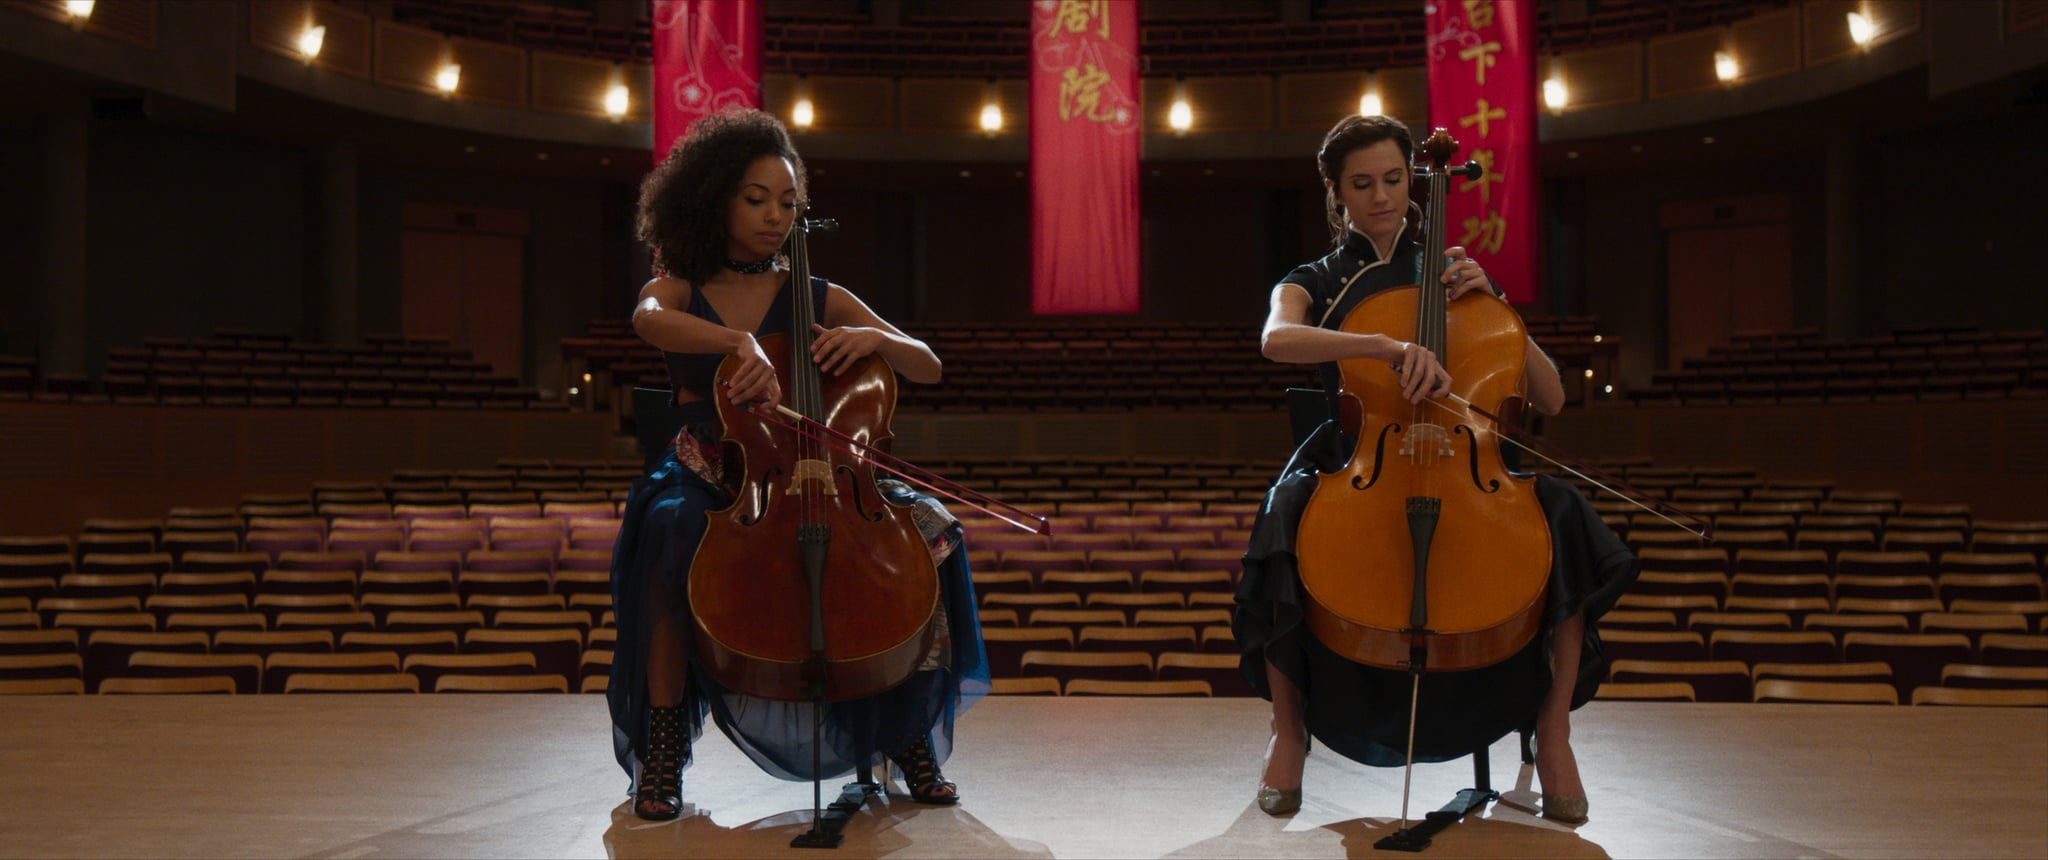 Whoa — Allison Williams and Logan Browning Actually Learned to Play the Cello For The Perfection